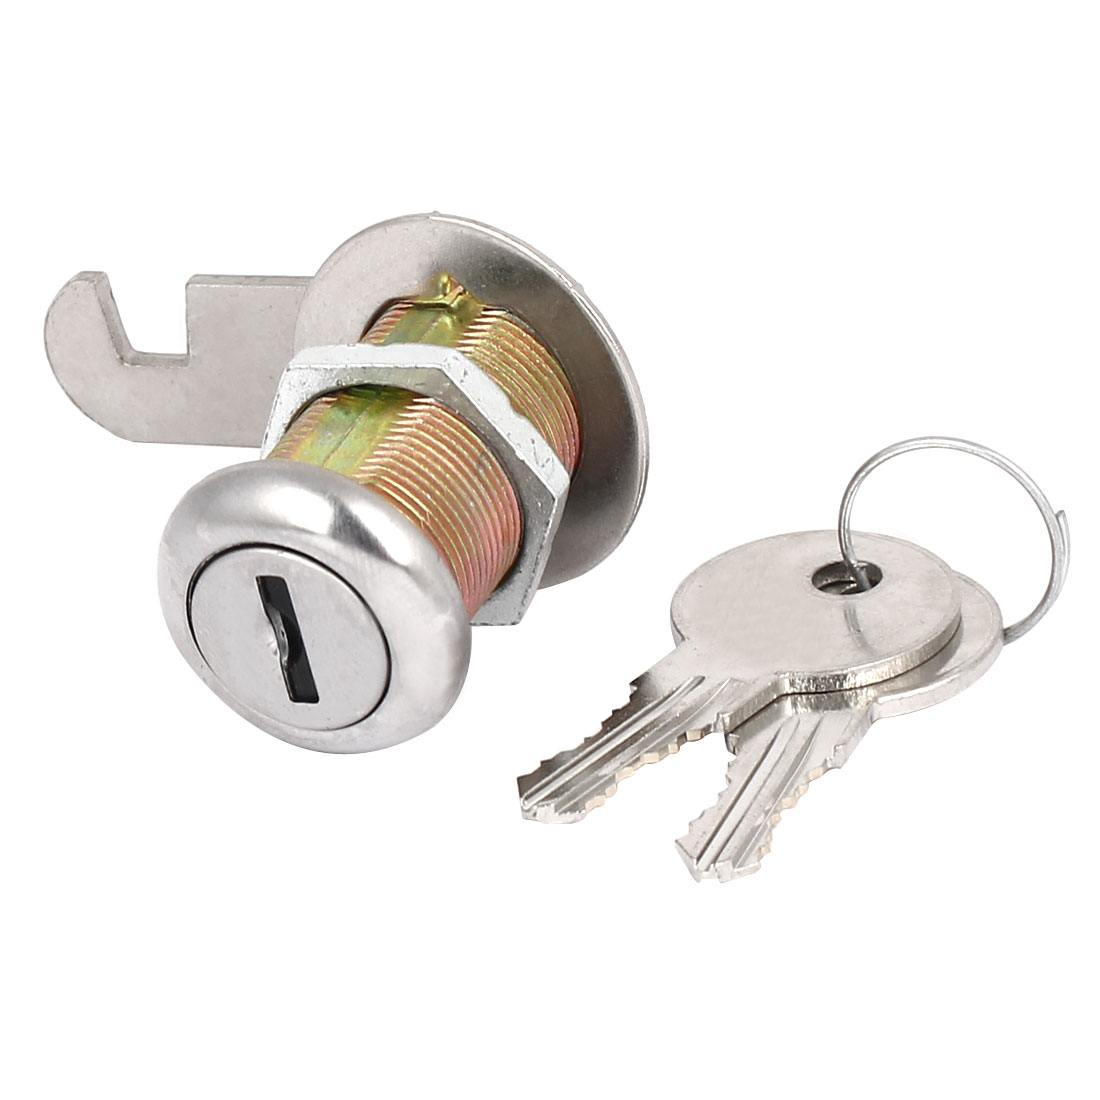 Desk Drawer Cabinet Keyed Alike Cam Lock 19mm x 30mm Thread w 2 Keys